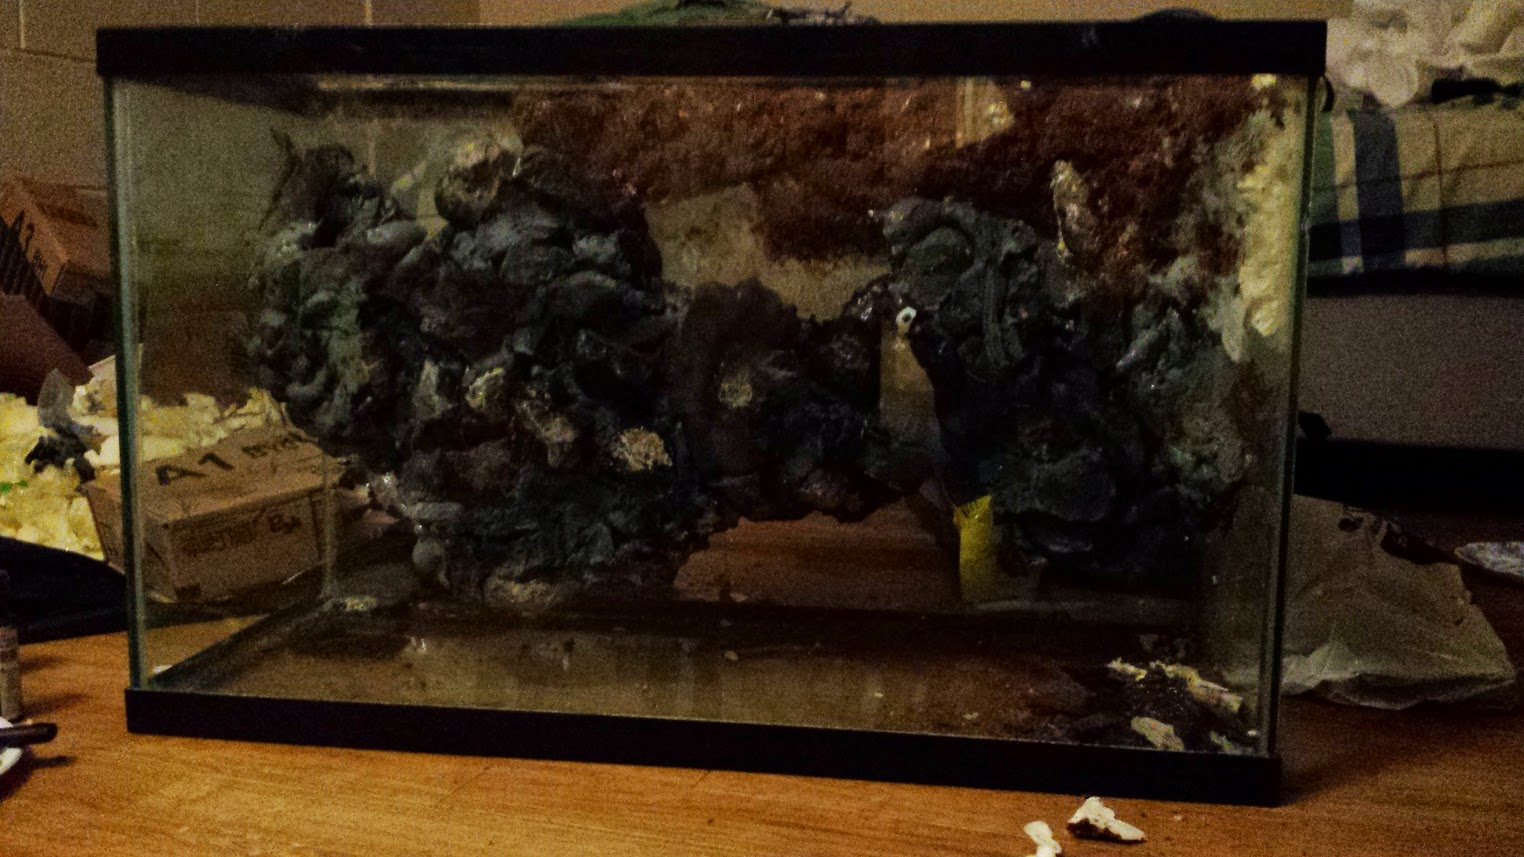 how to build a paludarium with a stream